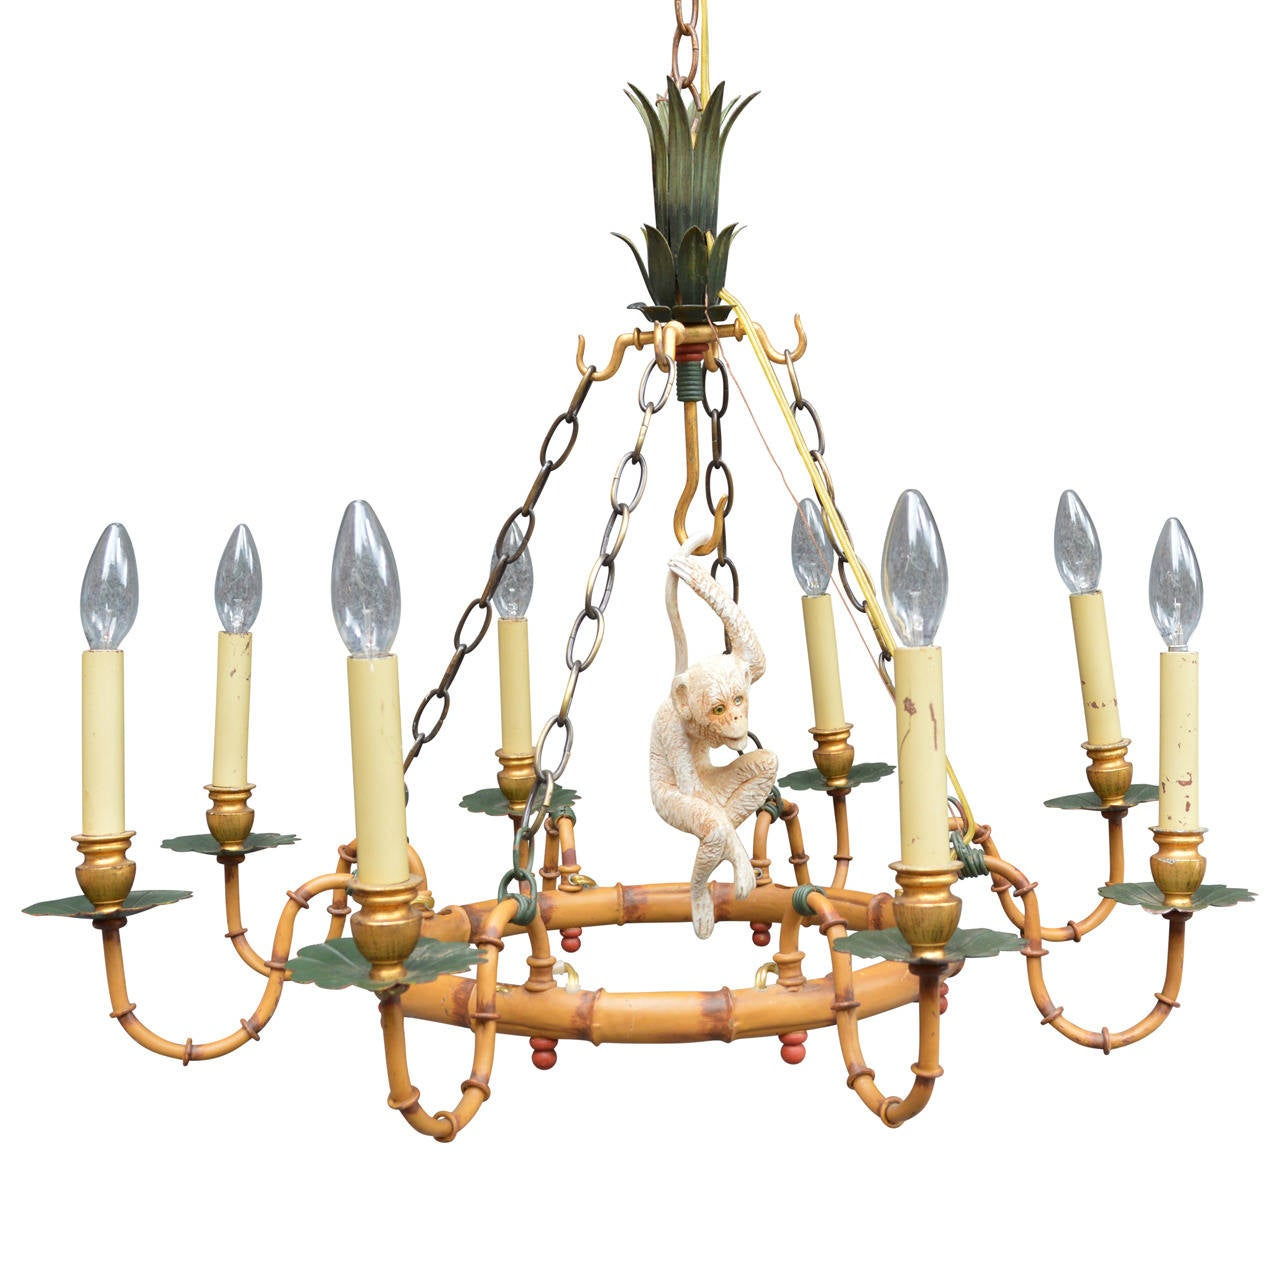 Bamboo monkey chandelier at 1stdibs faux bamboo monkey chandelier at 1stdibs arubaitofo Images